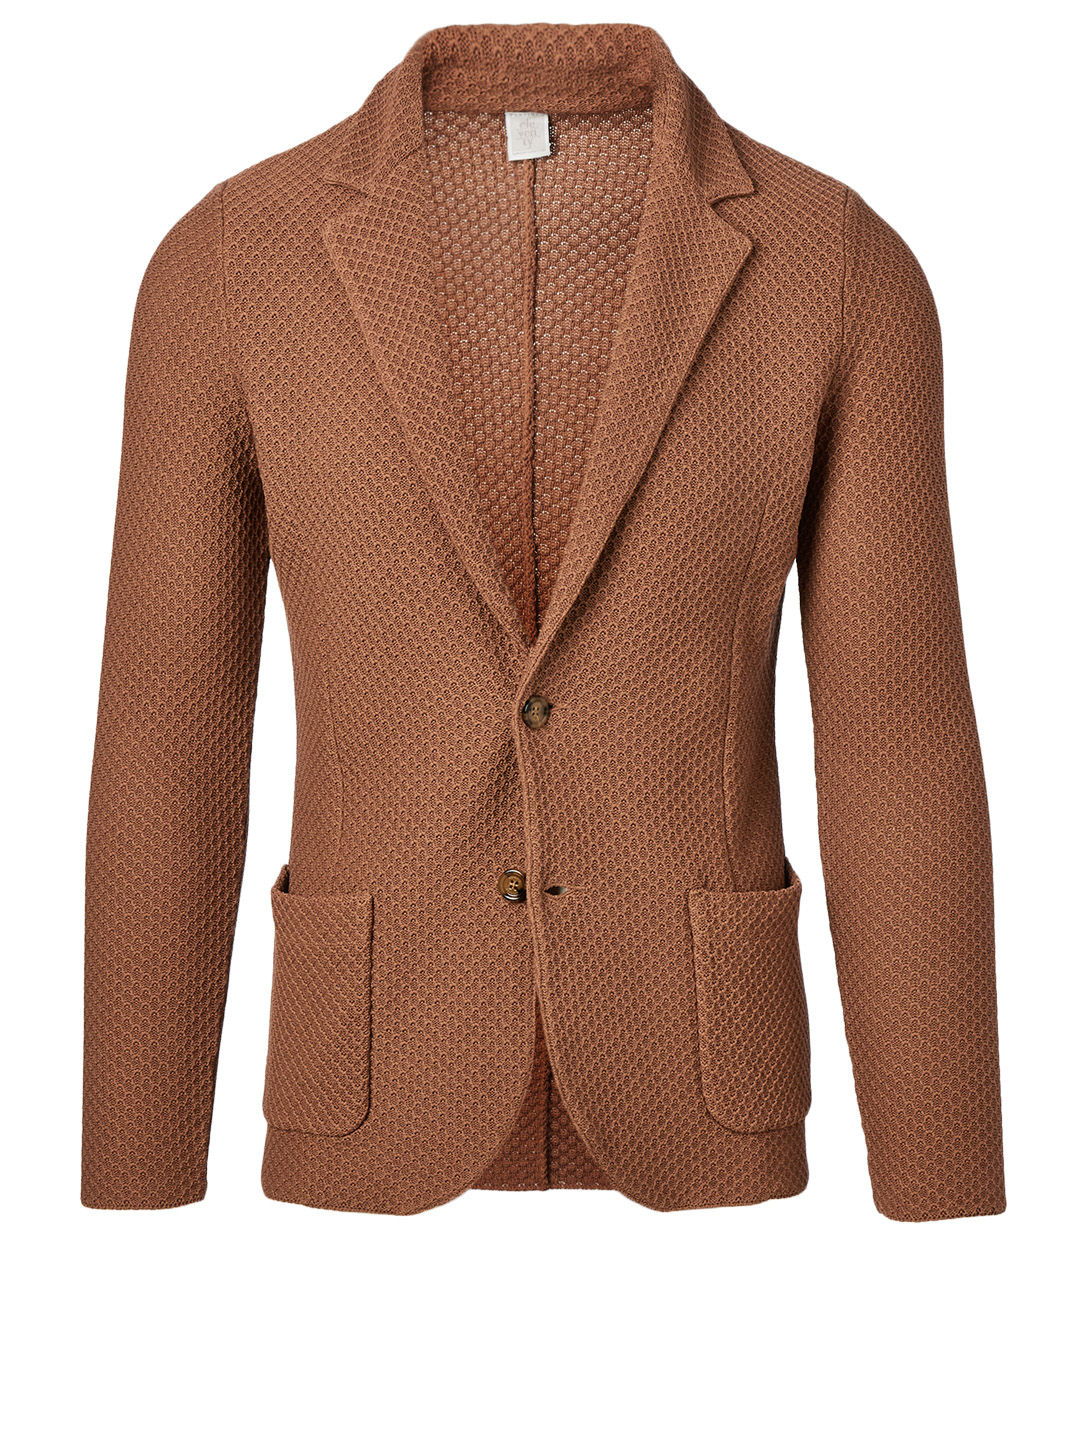 ELEVENTY Honeycomb Cotton Jacket Men's Brown